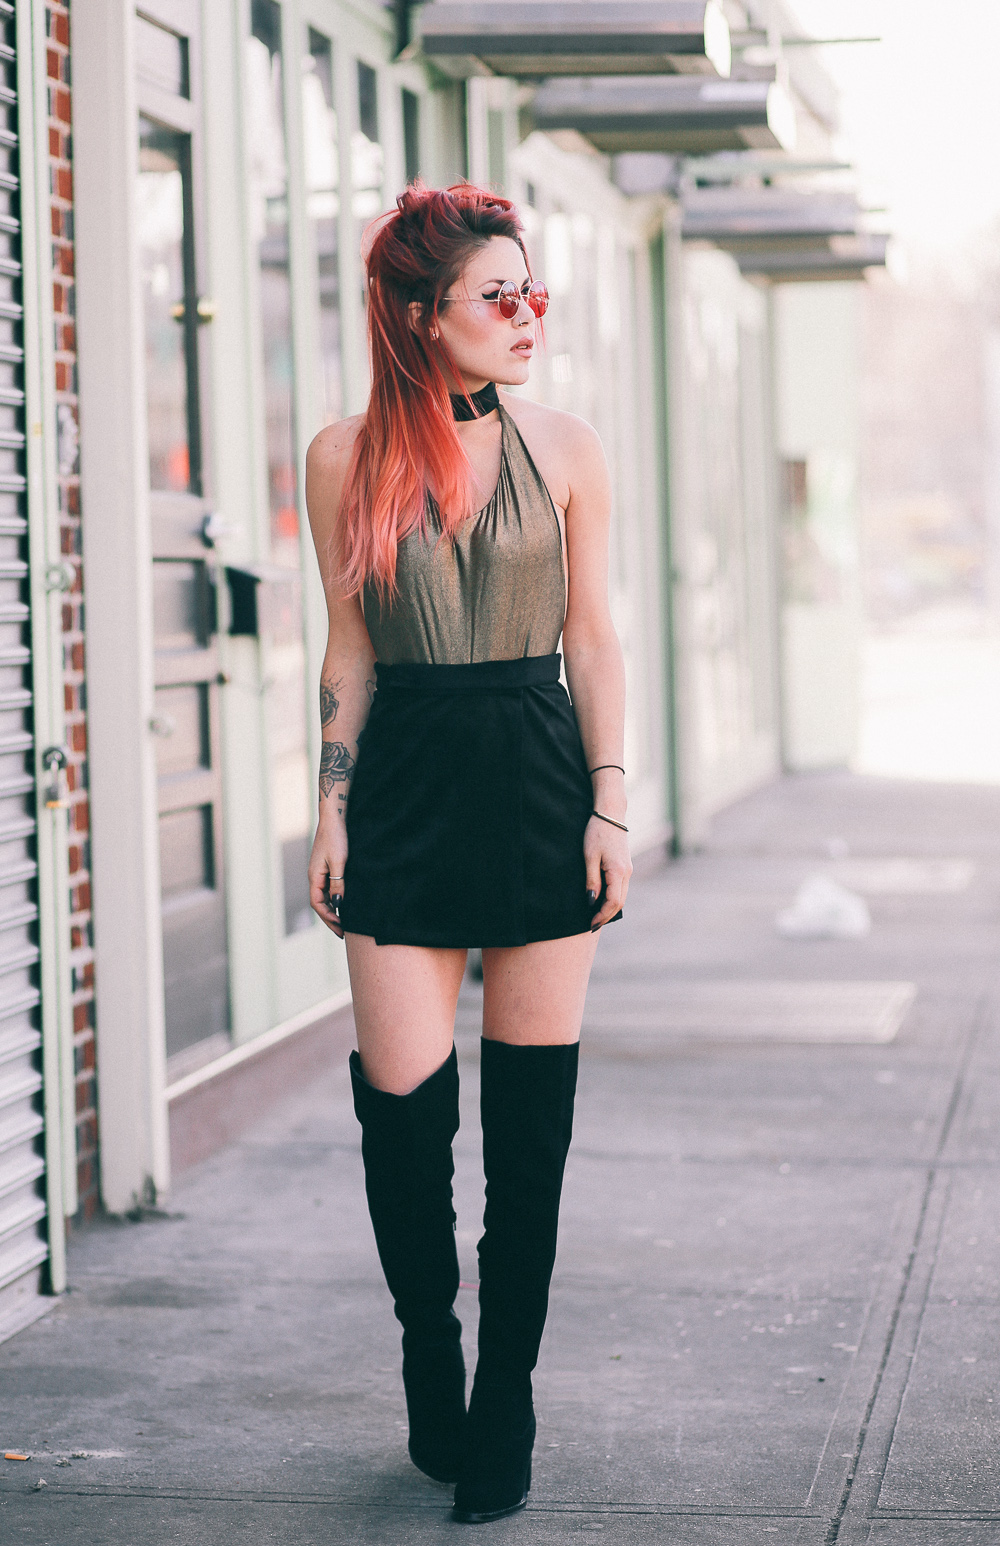 Le Happy wearing metallic bodysuit from Nasty Gal and round sunglasses